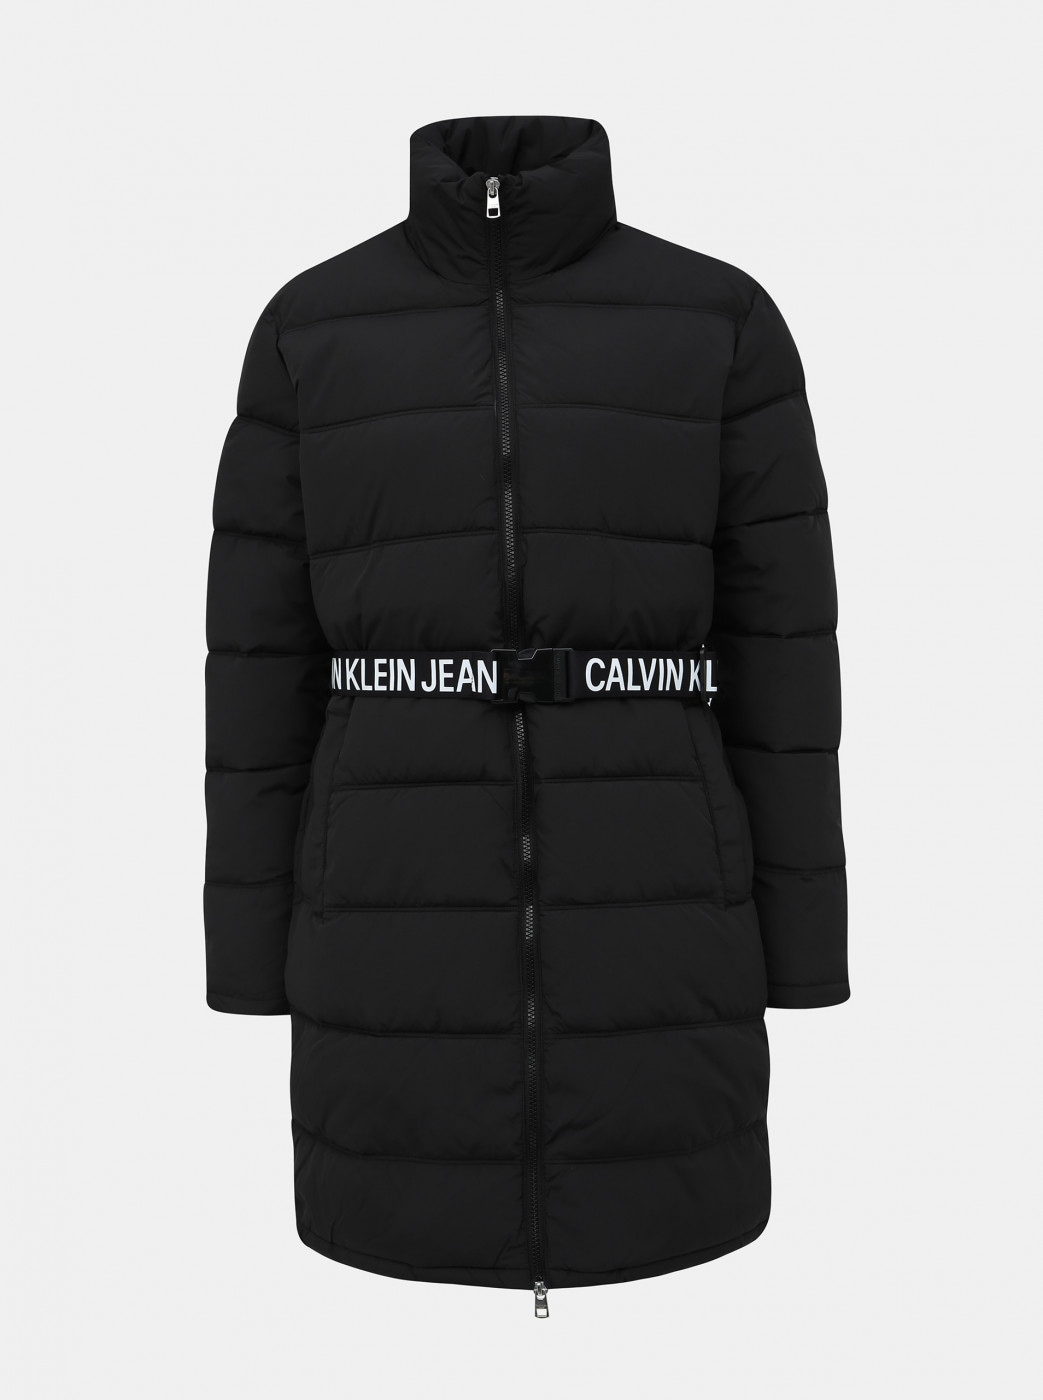 Calvin Klein Jeans Black Women's Winter Coat